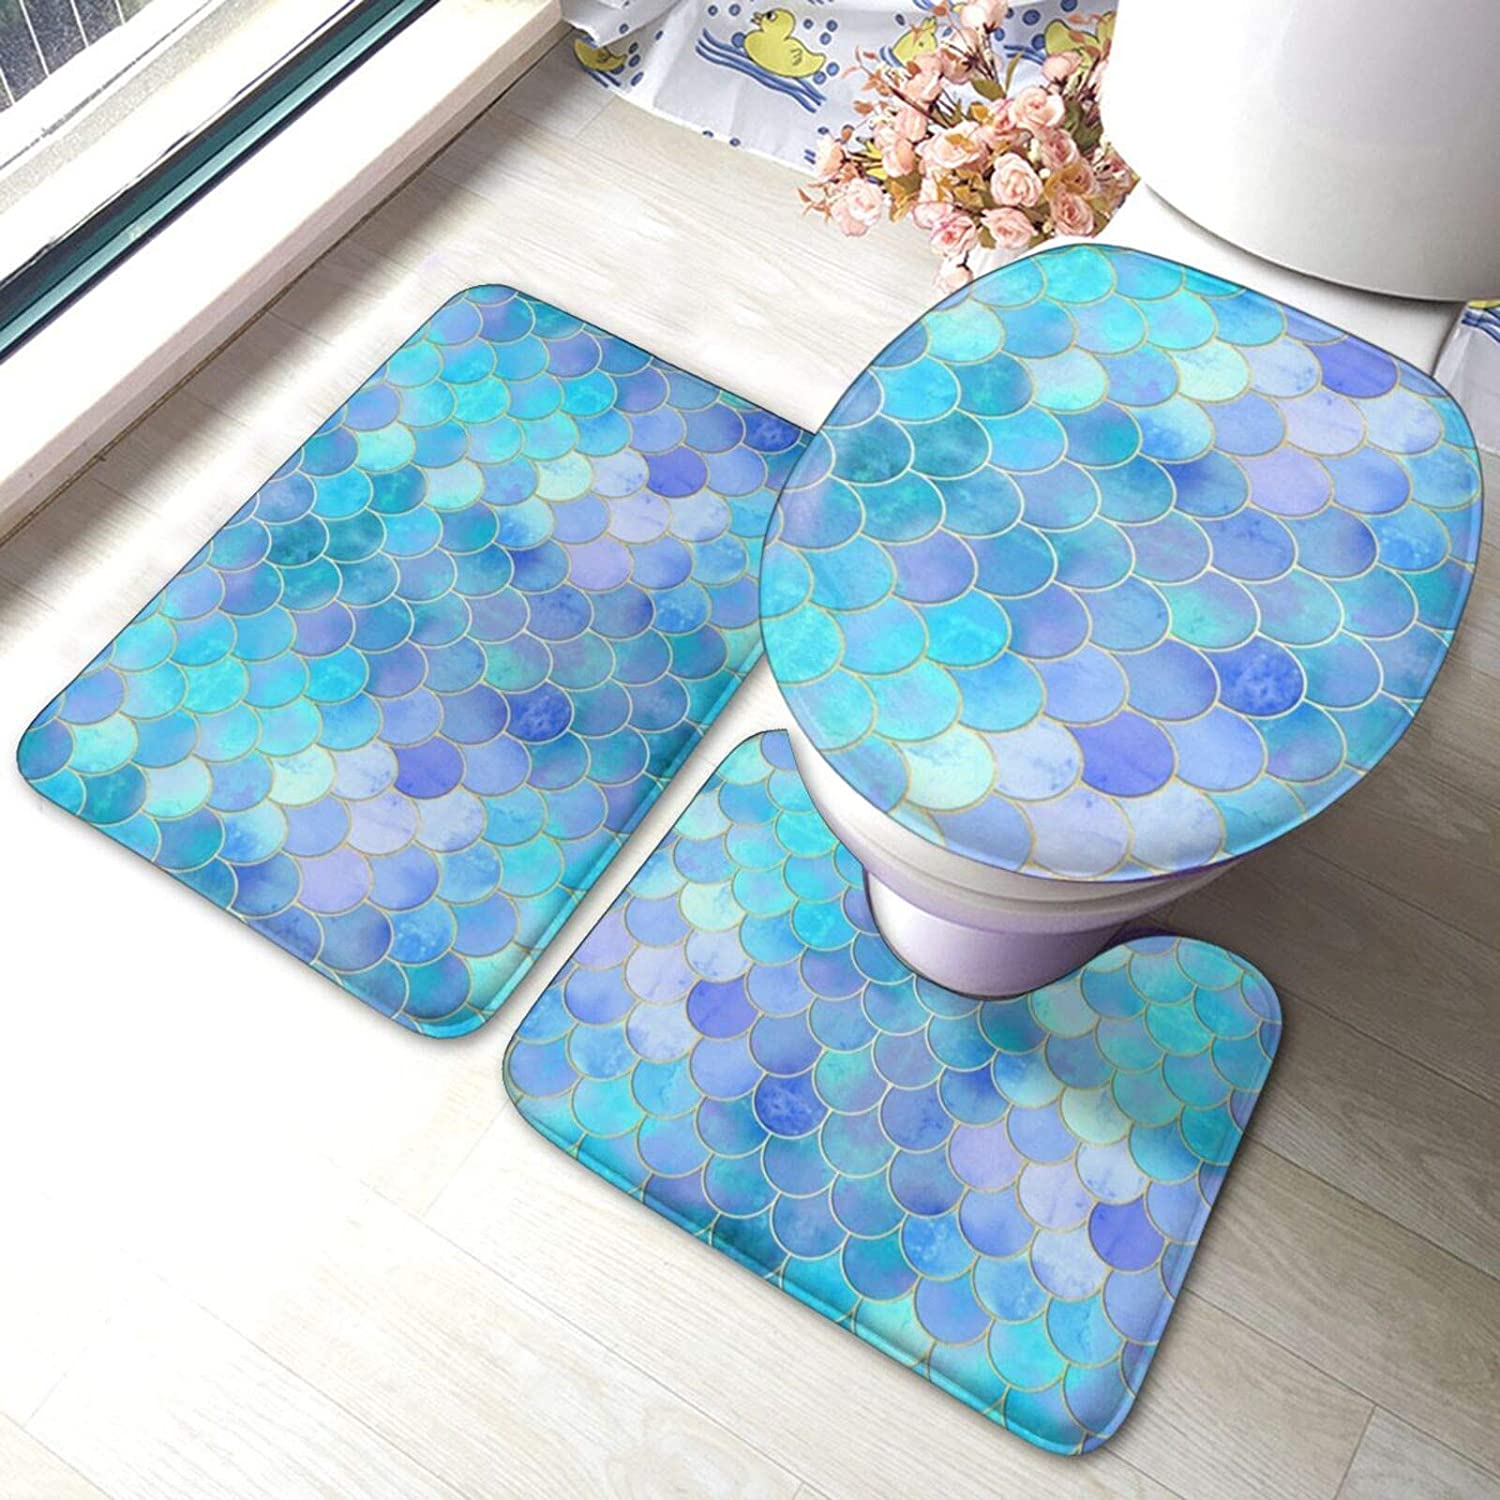 ARRISLIFE Limited time trial price Bathroom Rugs Set 3 Piece Gold Max 58% OFF Scale Printed A Mermaid